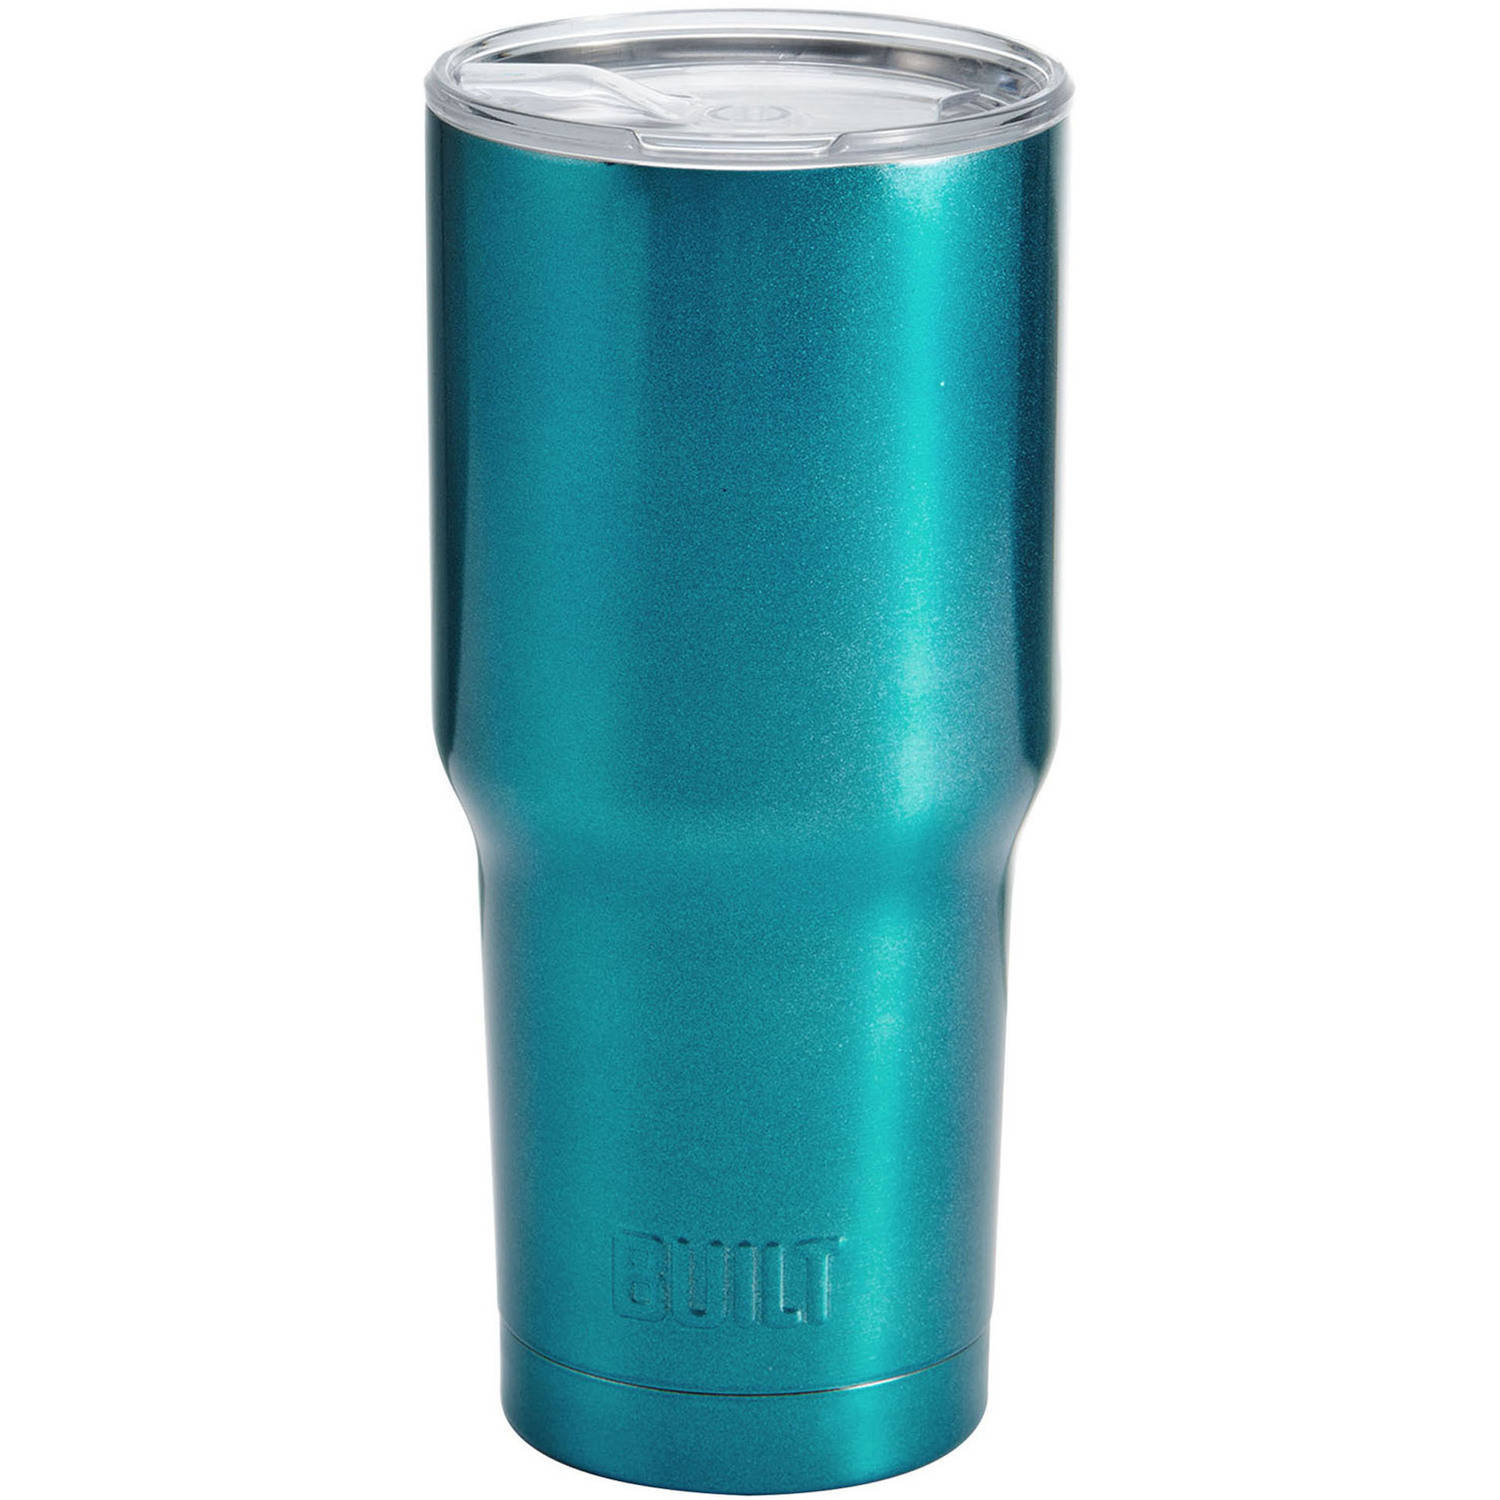 Built 30 Ounce Double Wall Stainless Steel Vacuum Insulated Tumbler, 1 Each